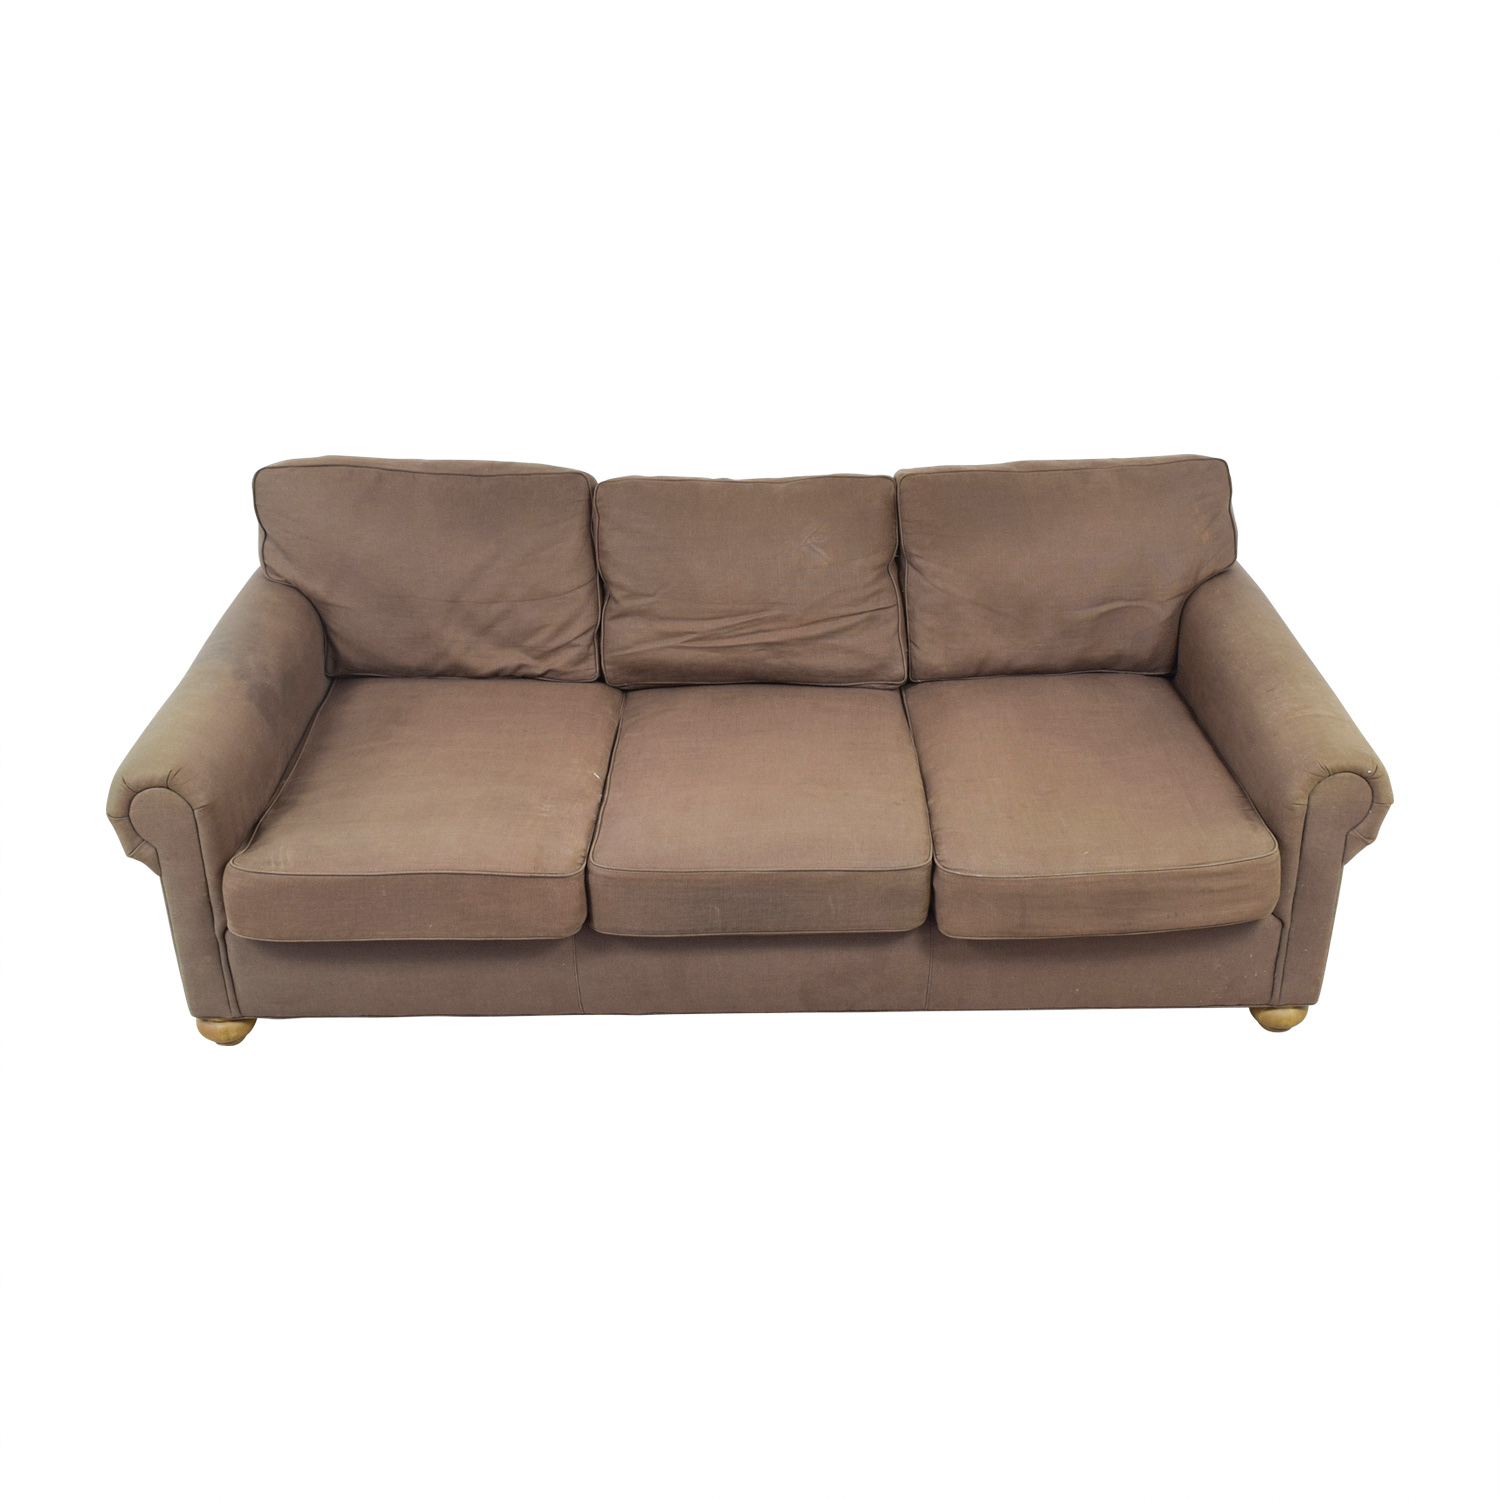 Restoration Hardware Restoration Hardware Brown Three-Cushion Cloud Fabric Couch price